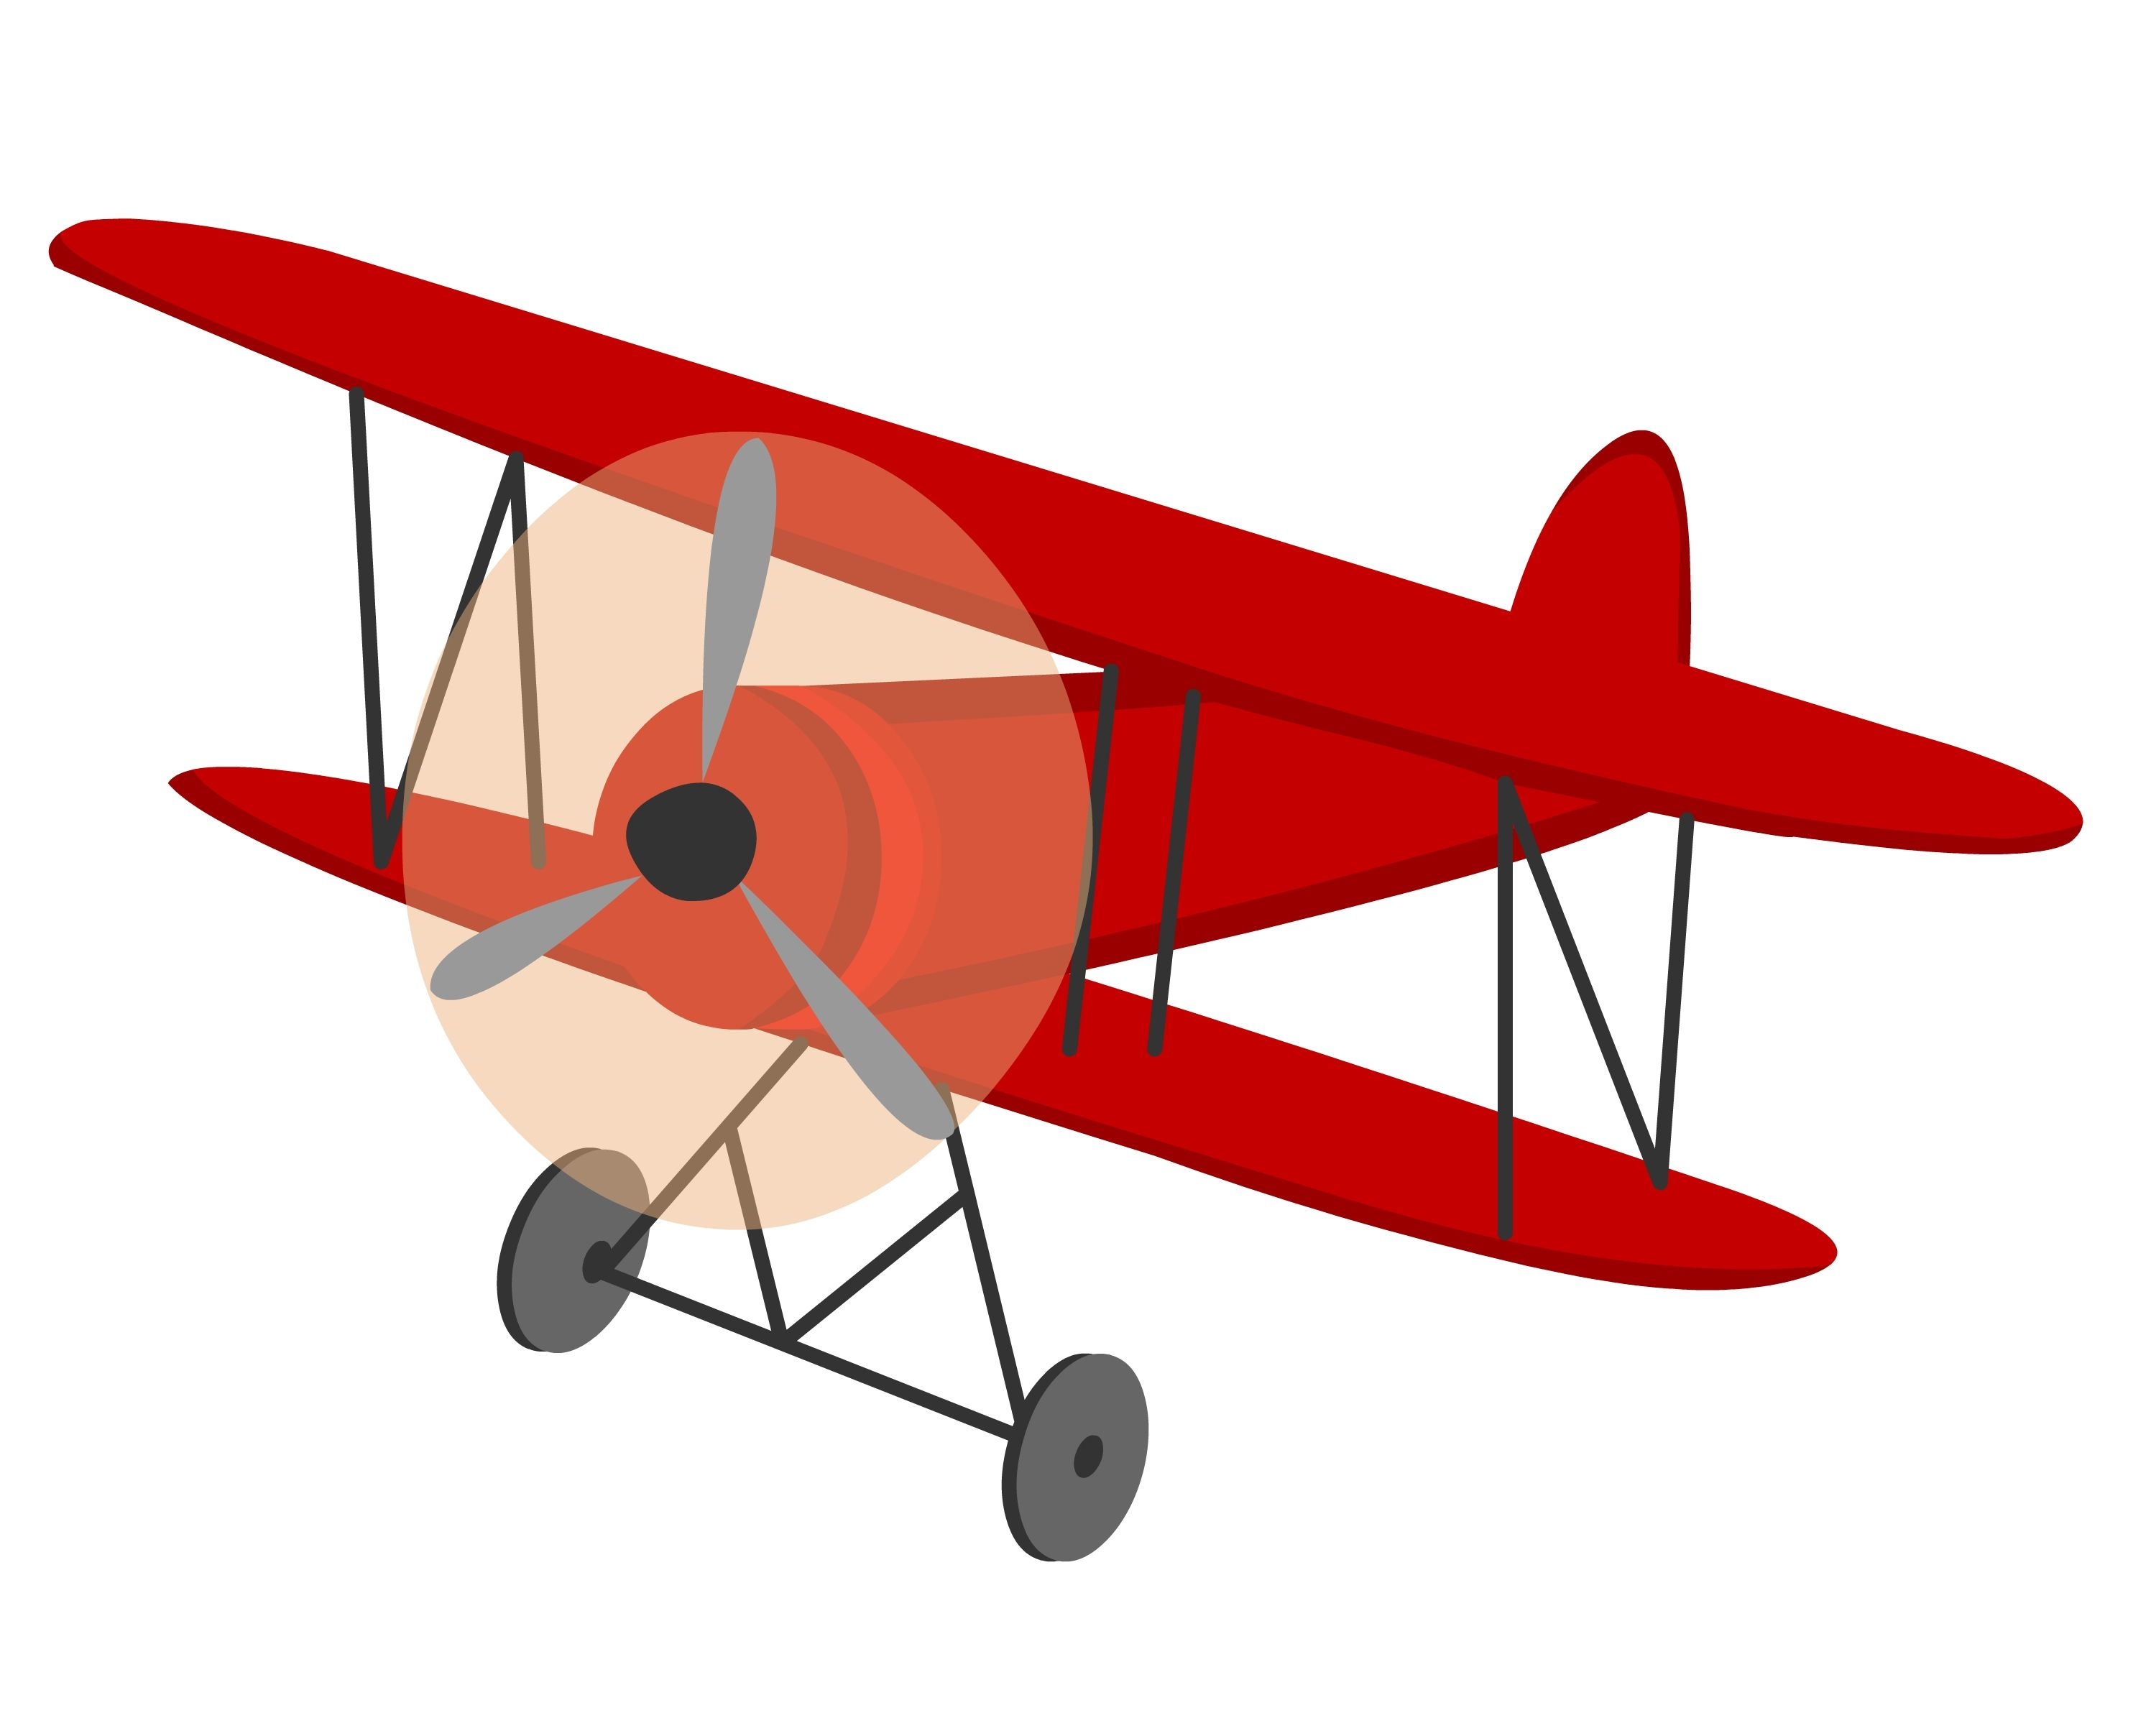 Biplane clipart. Vintage party planning